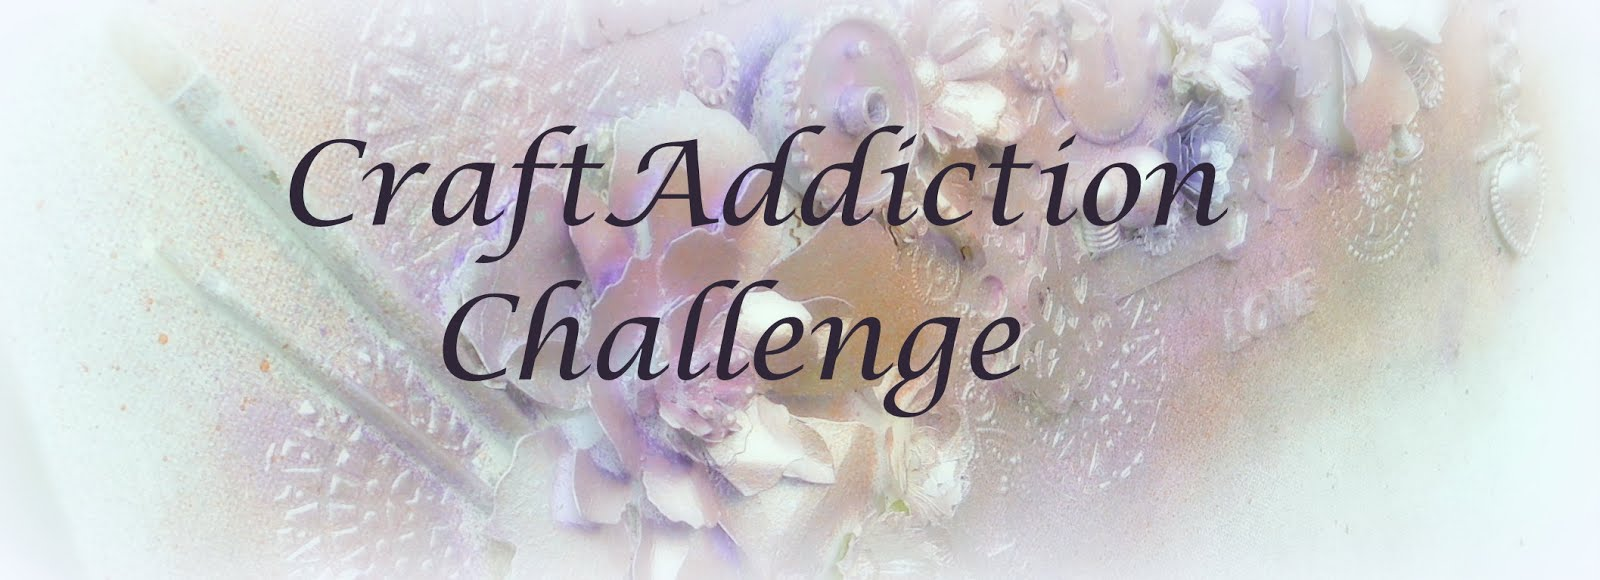 CraftAddiction-Challenge